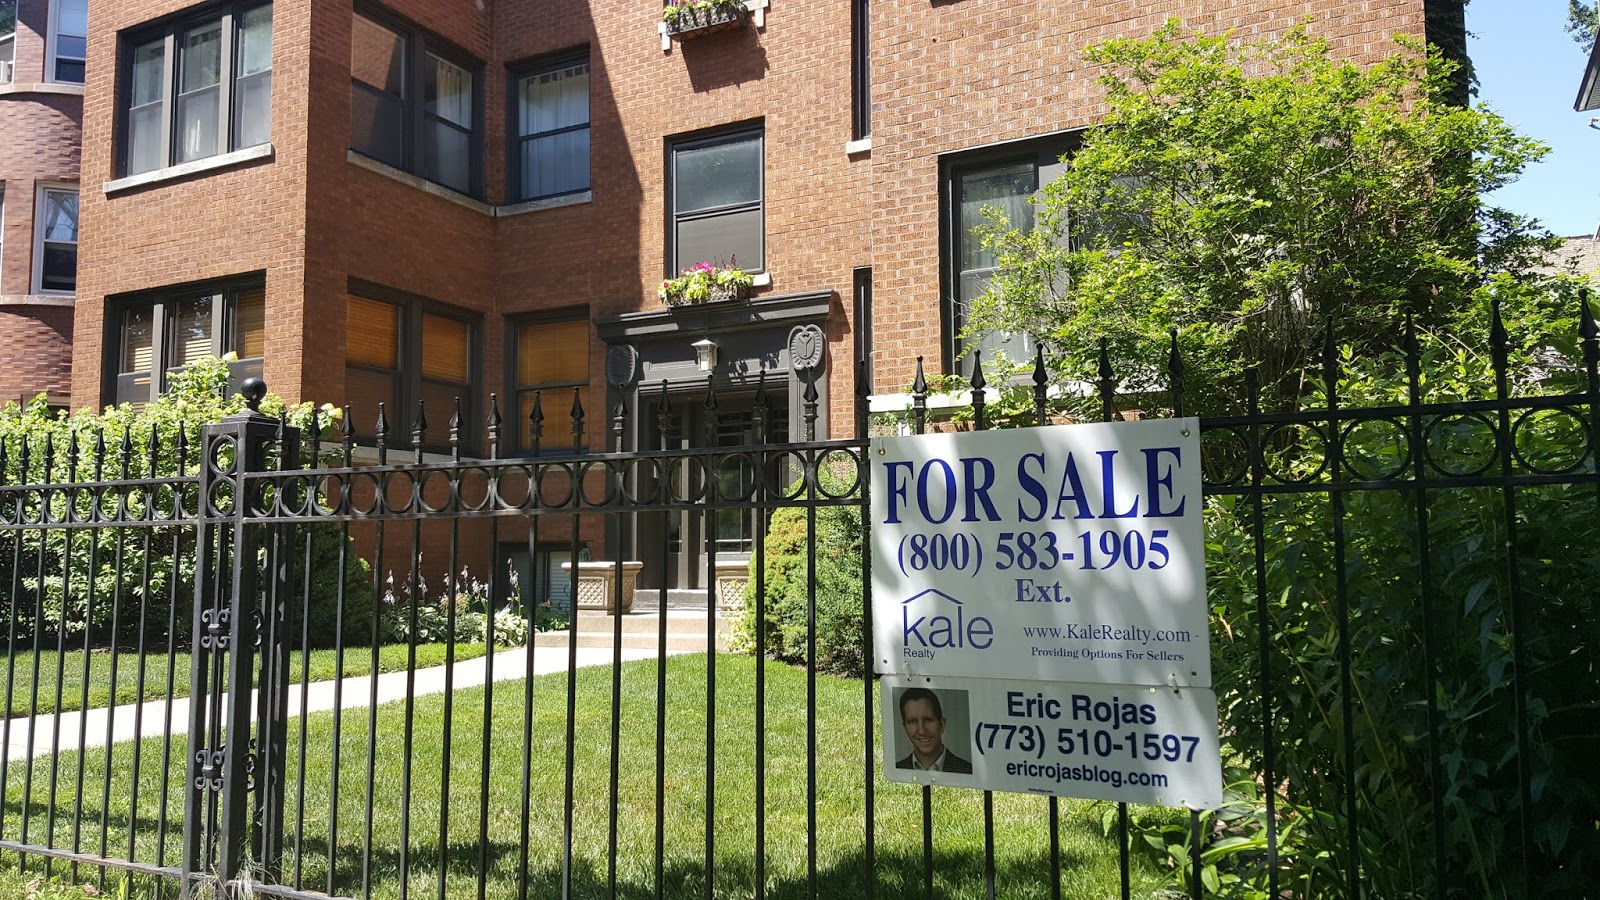 Chicago Property Appraisal District